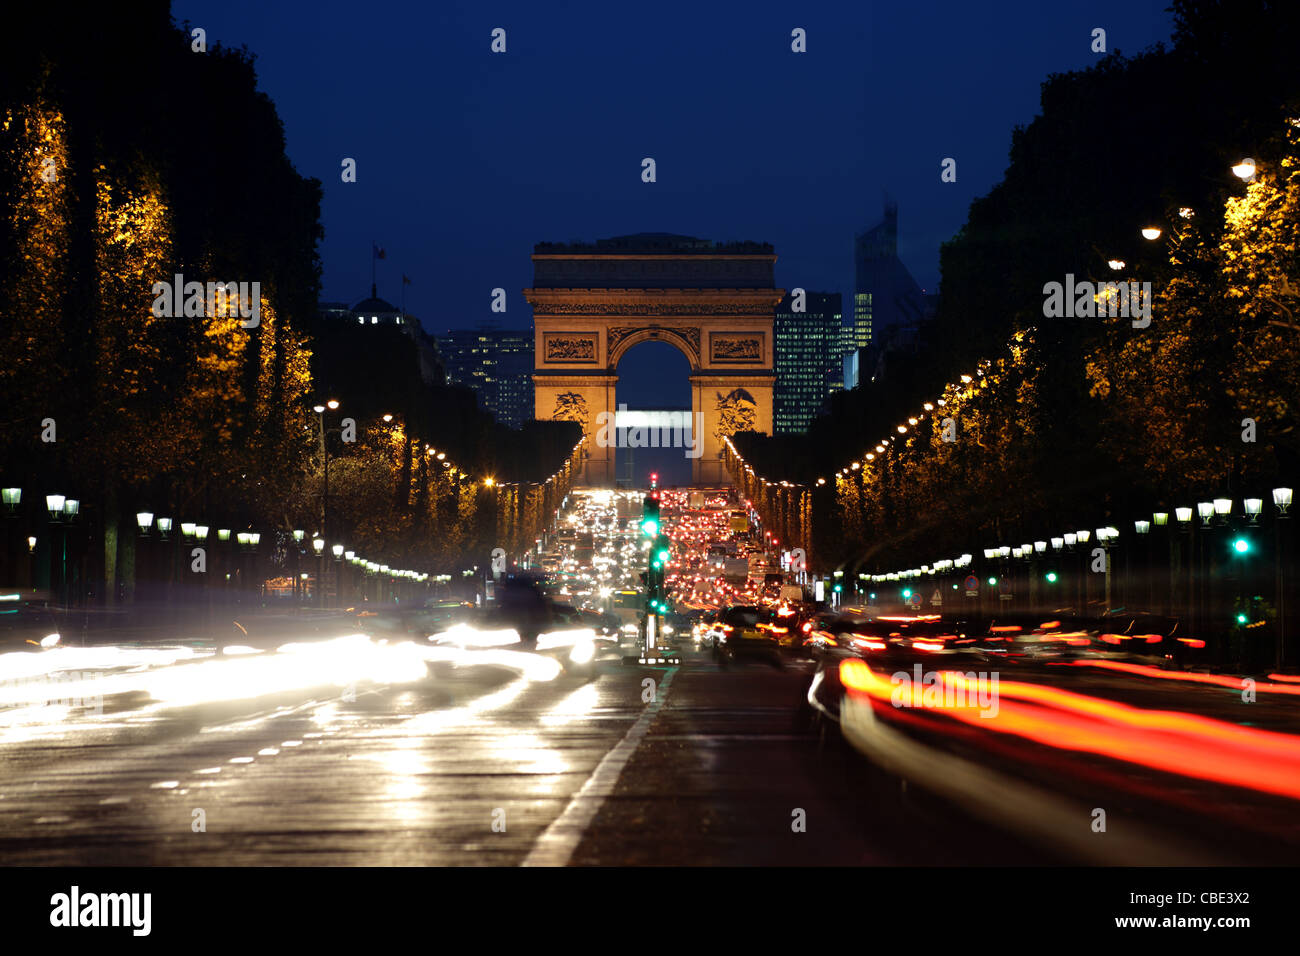 Arc de Triomphe and Champs-Elysees Avenue at night - Stock Image